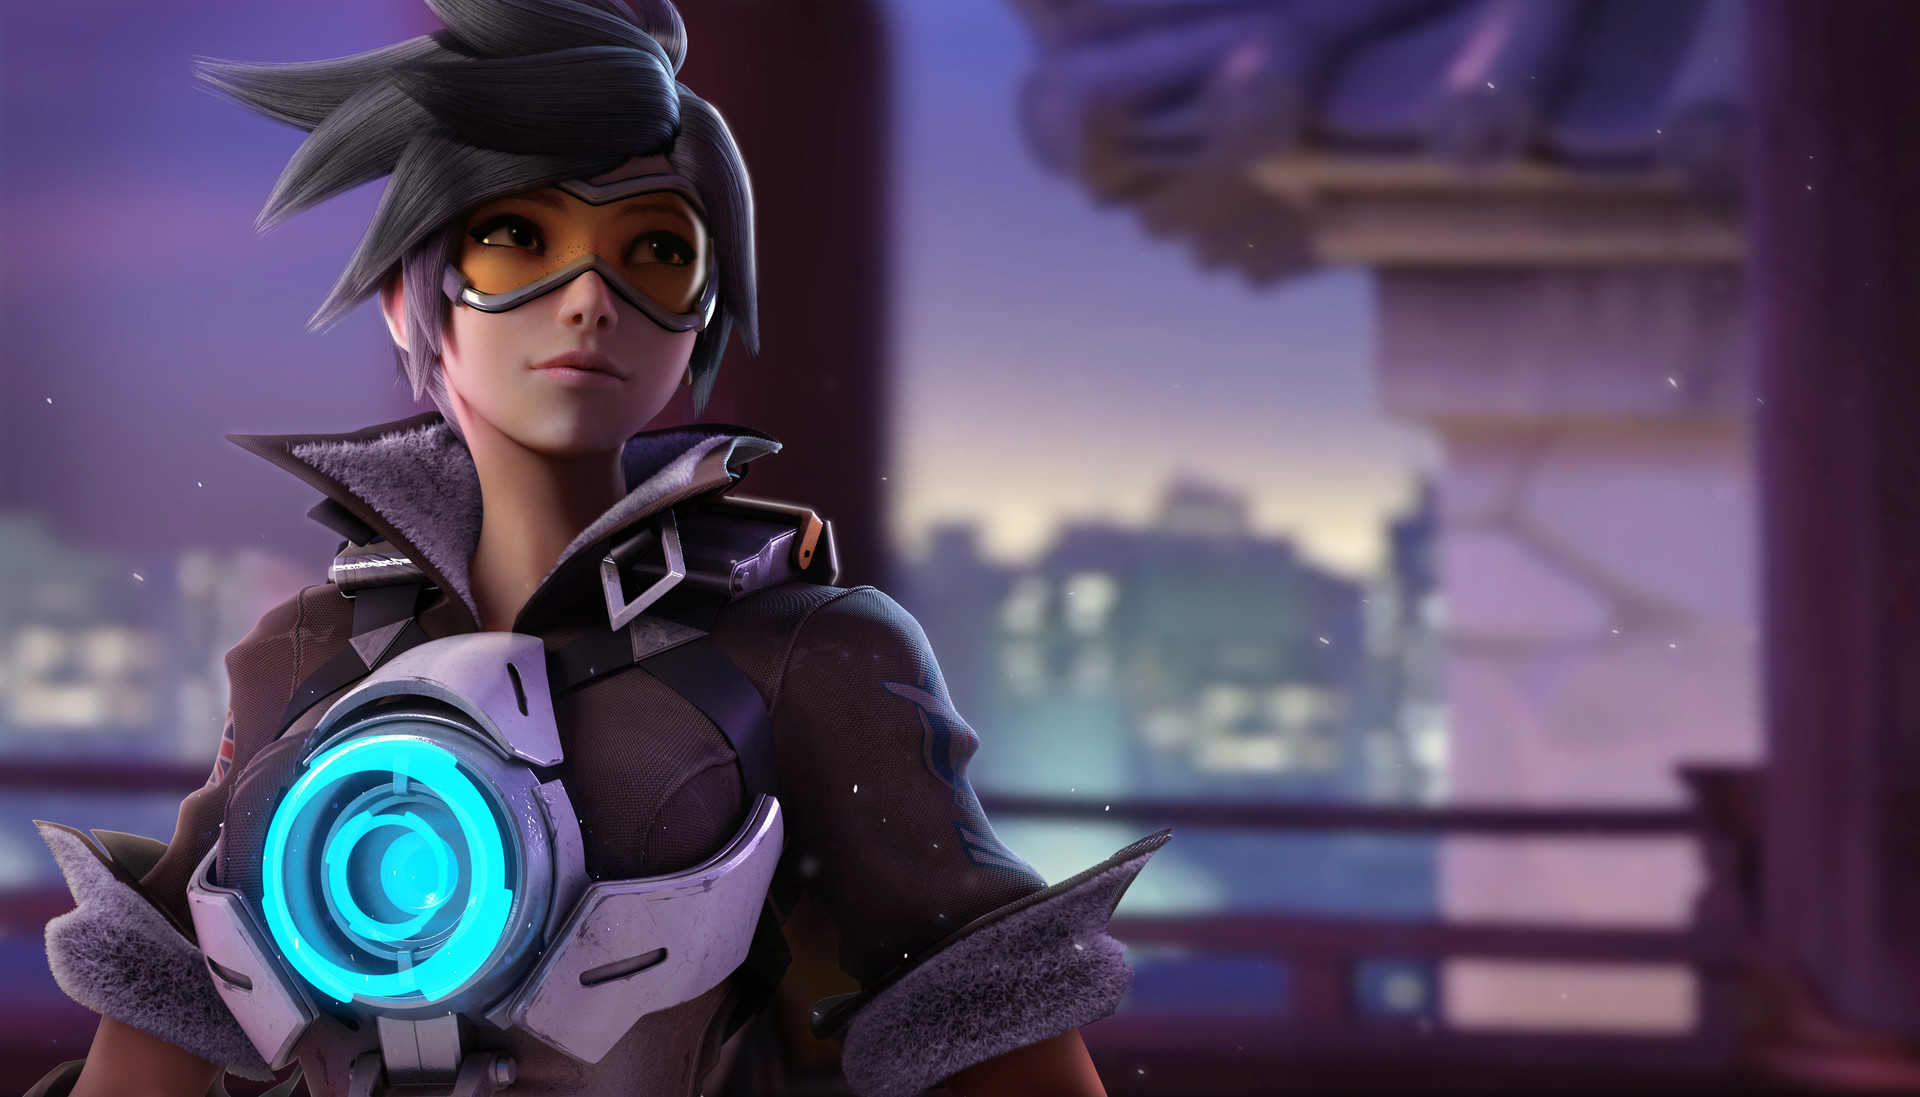 overwatch character background